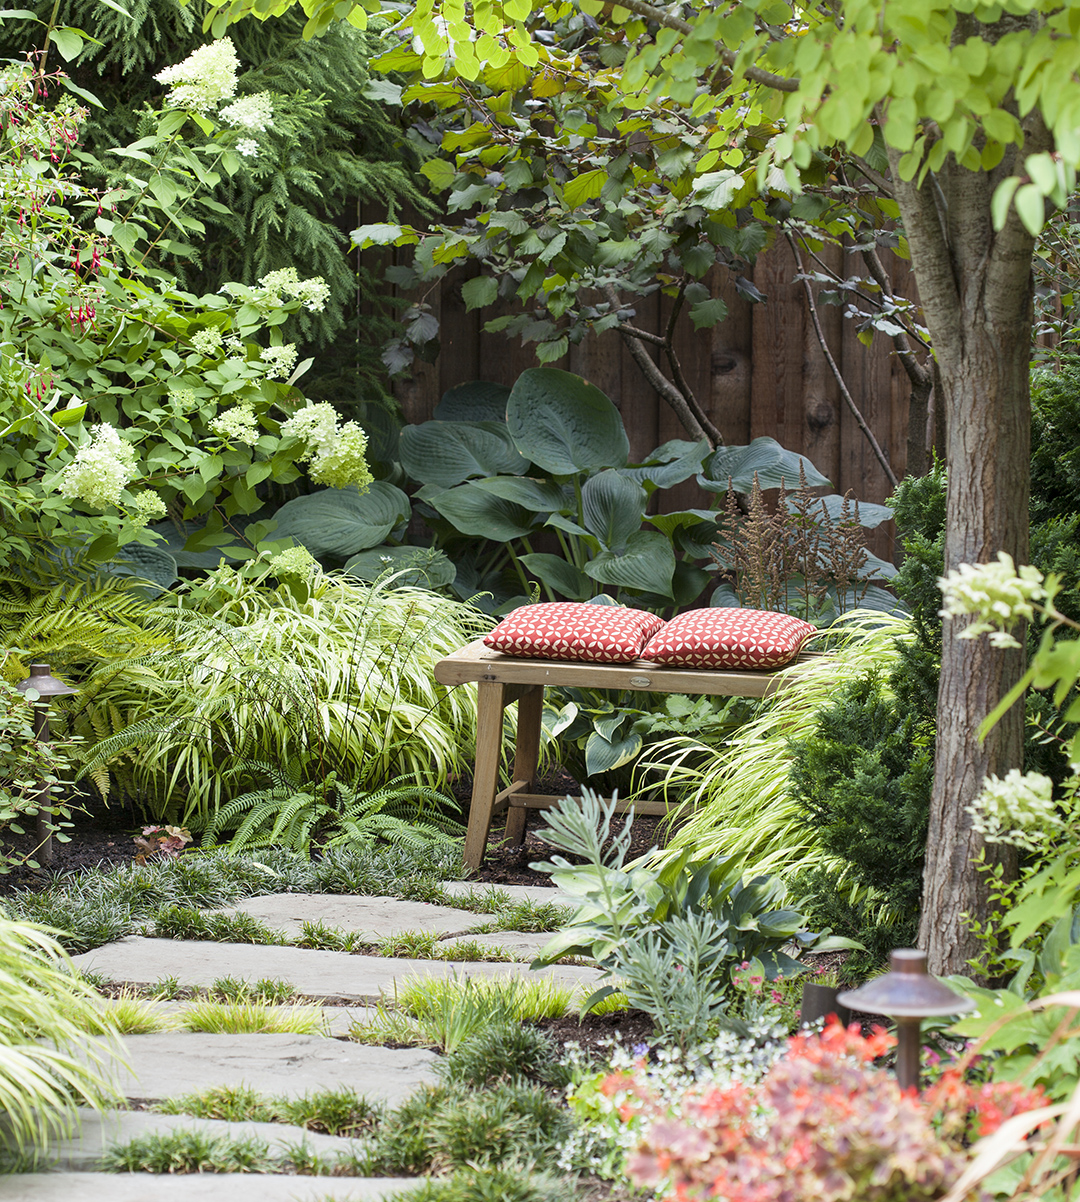 bench with pillows on garden path